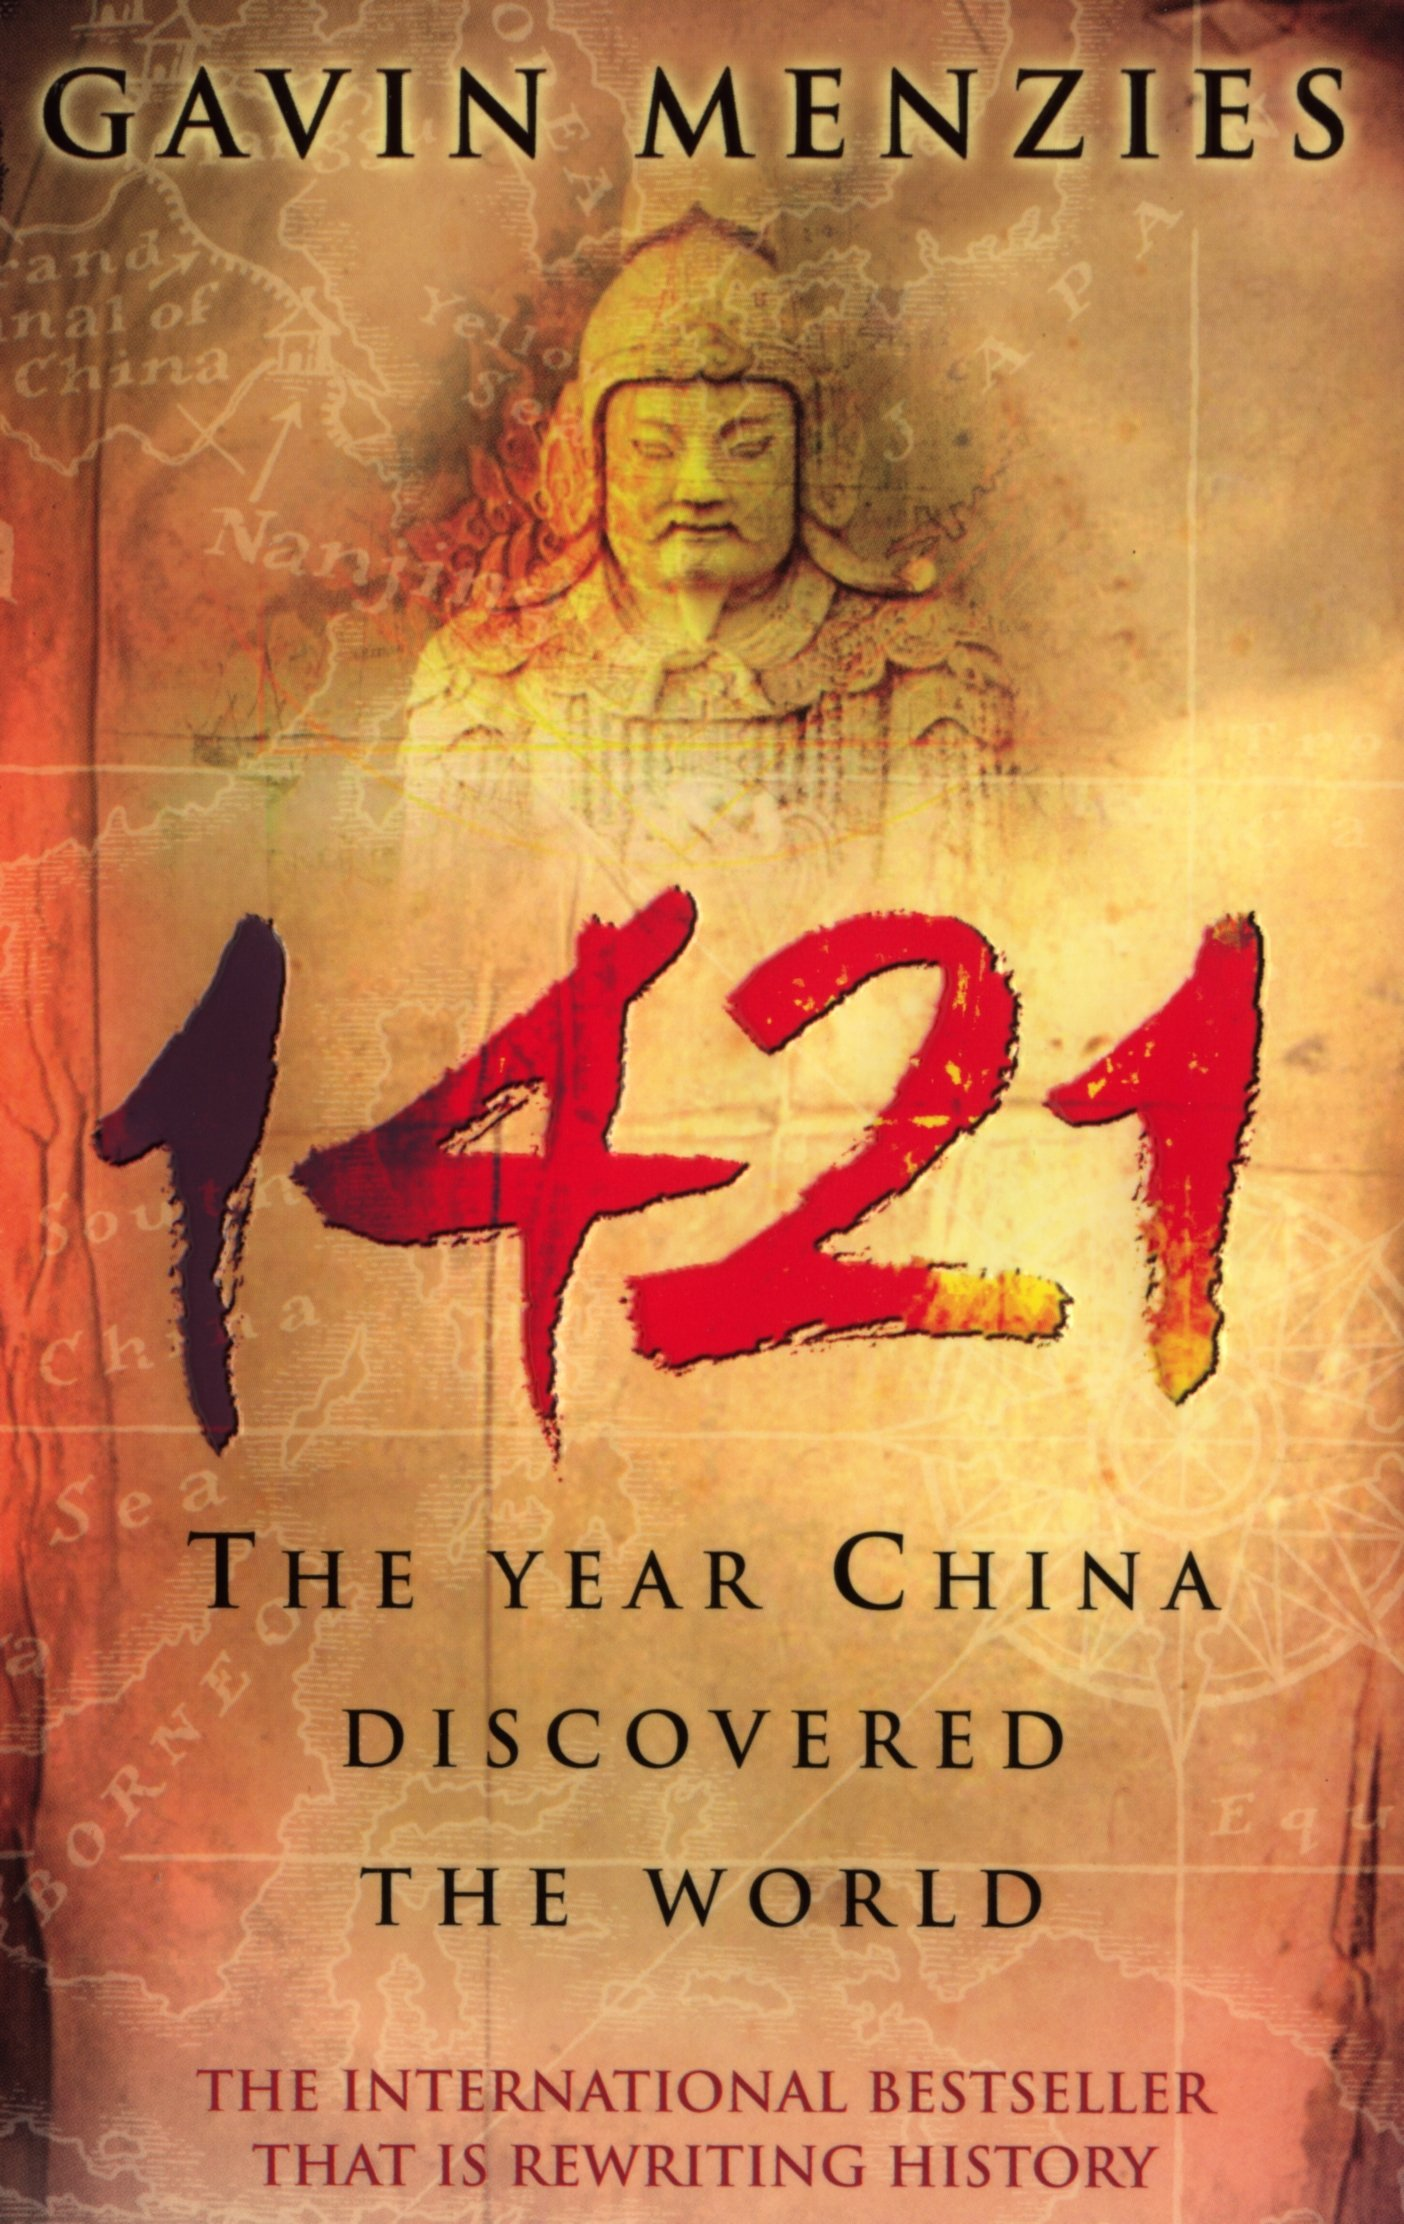 Evaluating the Validity of Information – Did the Chinese Discover America in 1421?